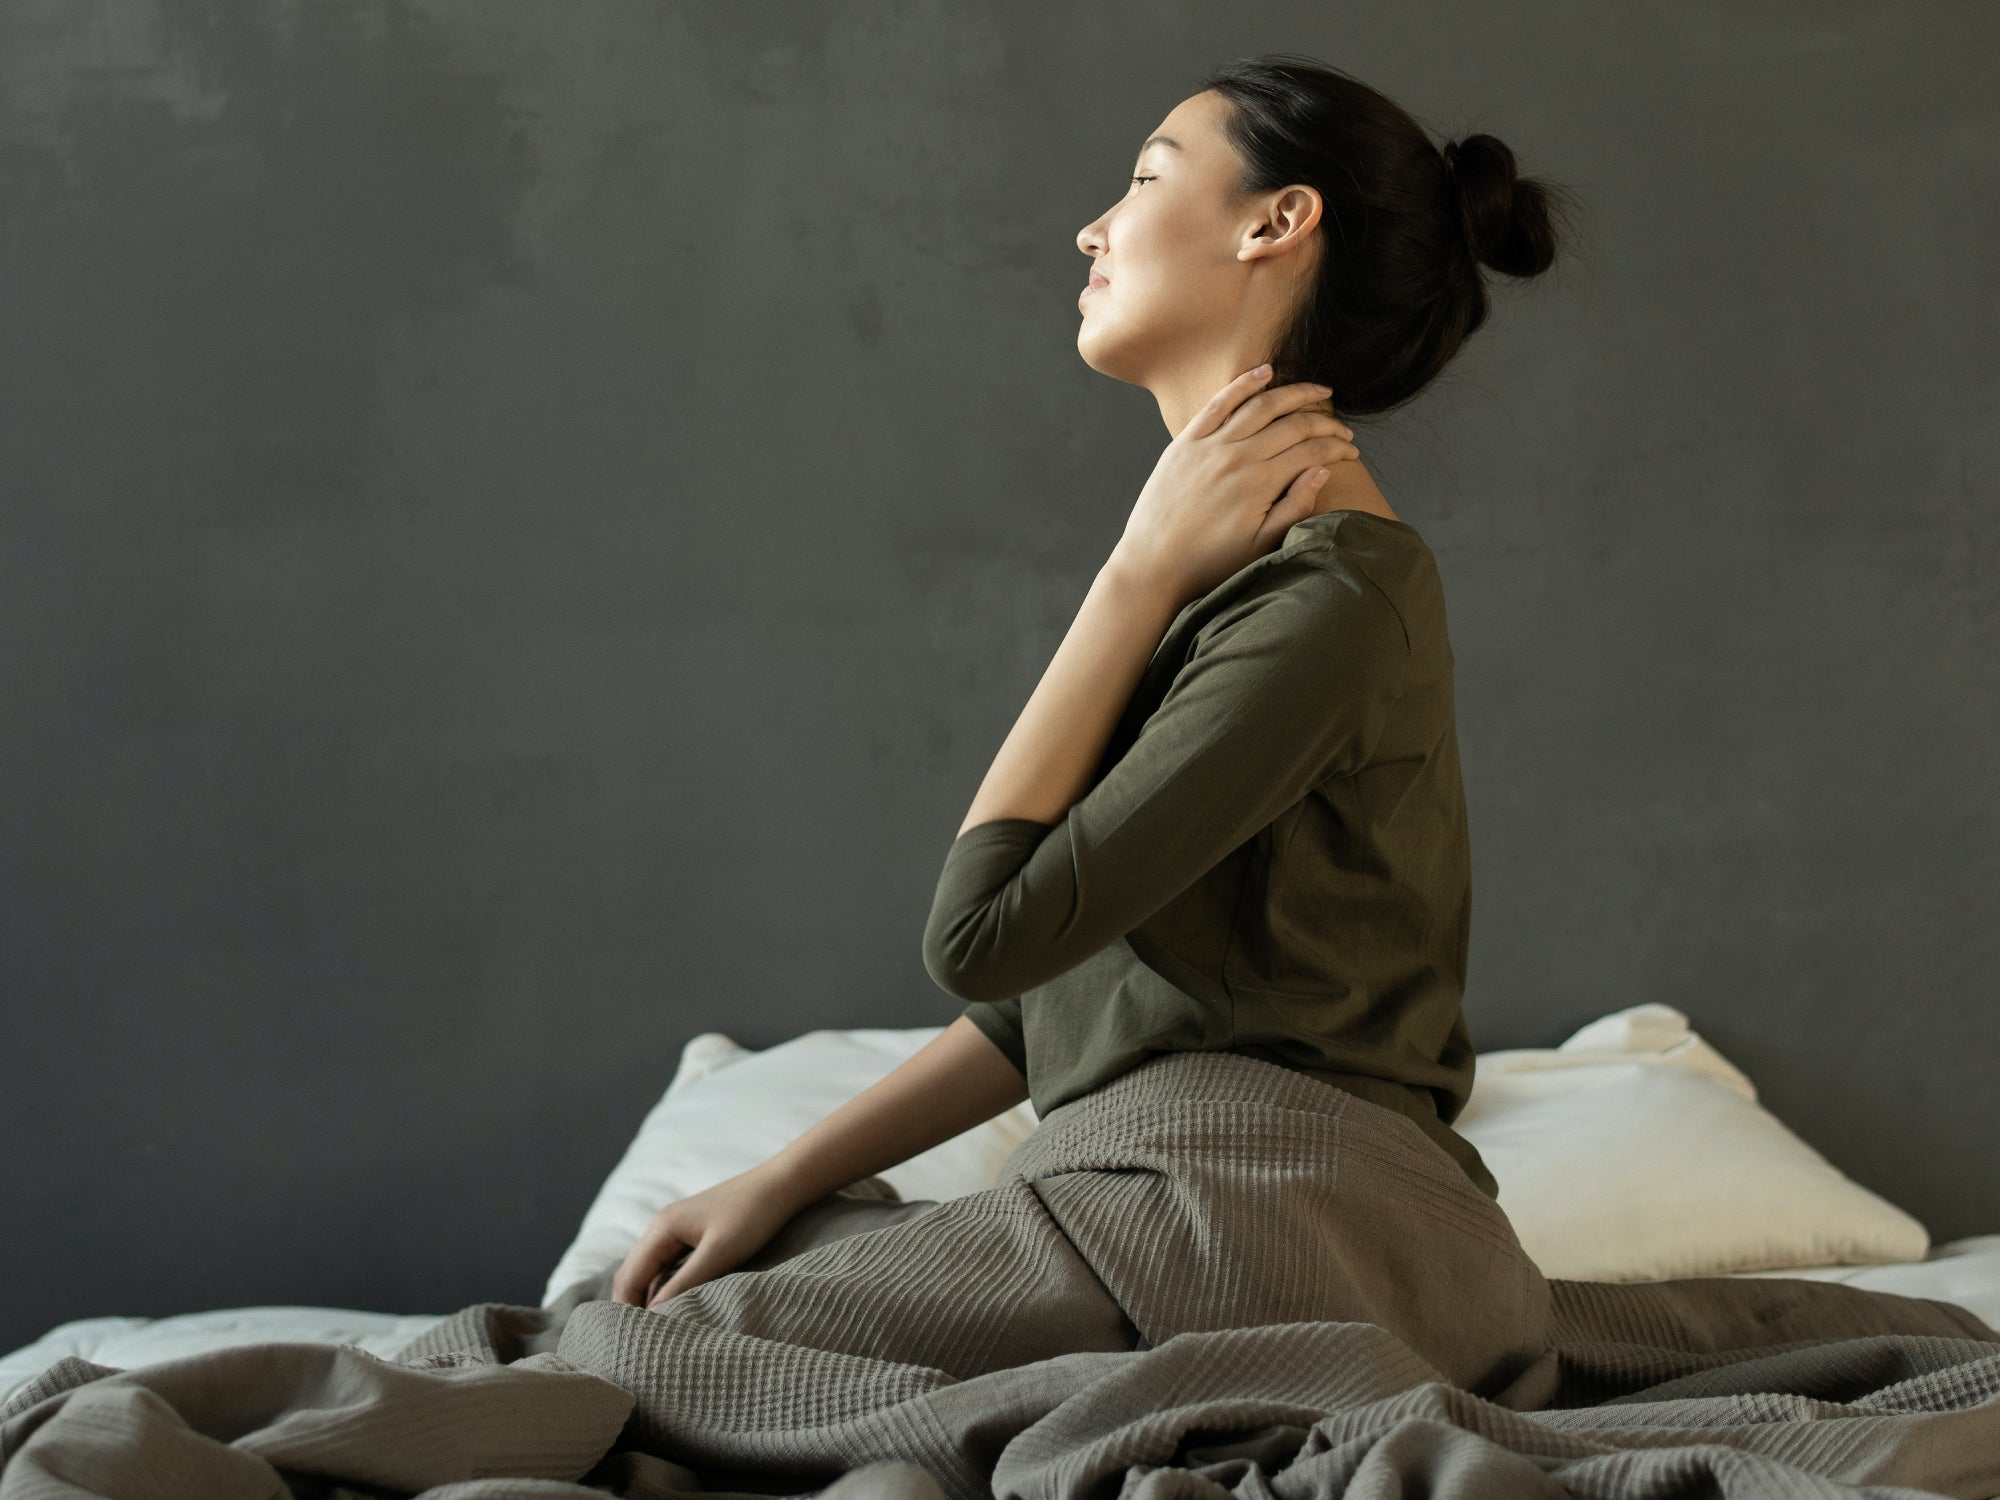 a woman sitting in bed with neck pain